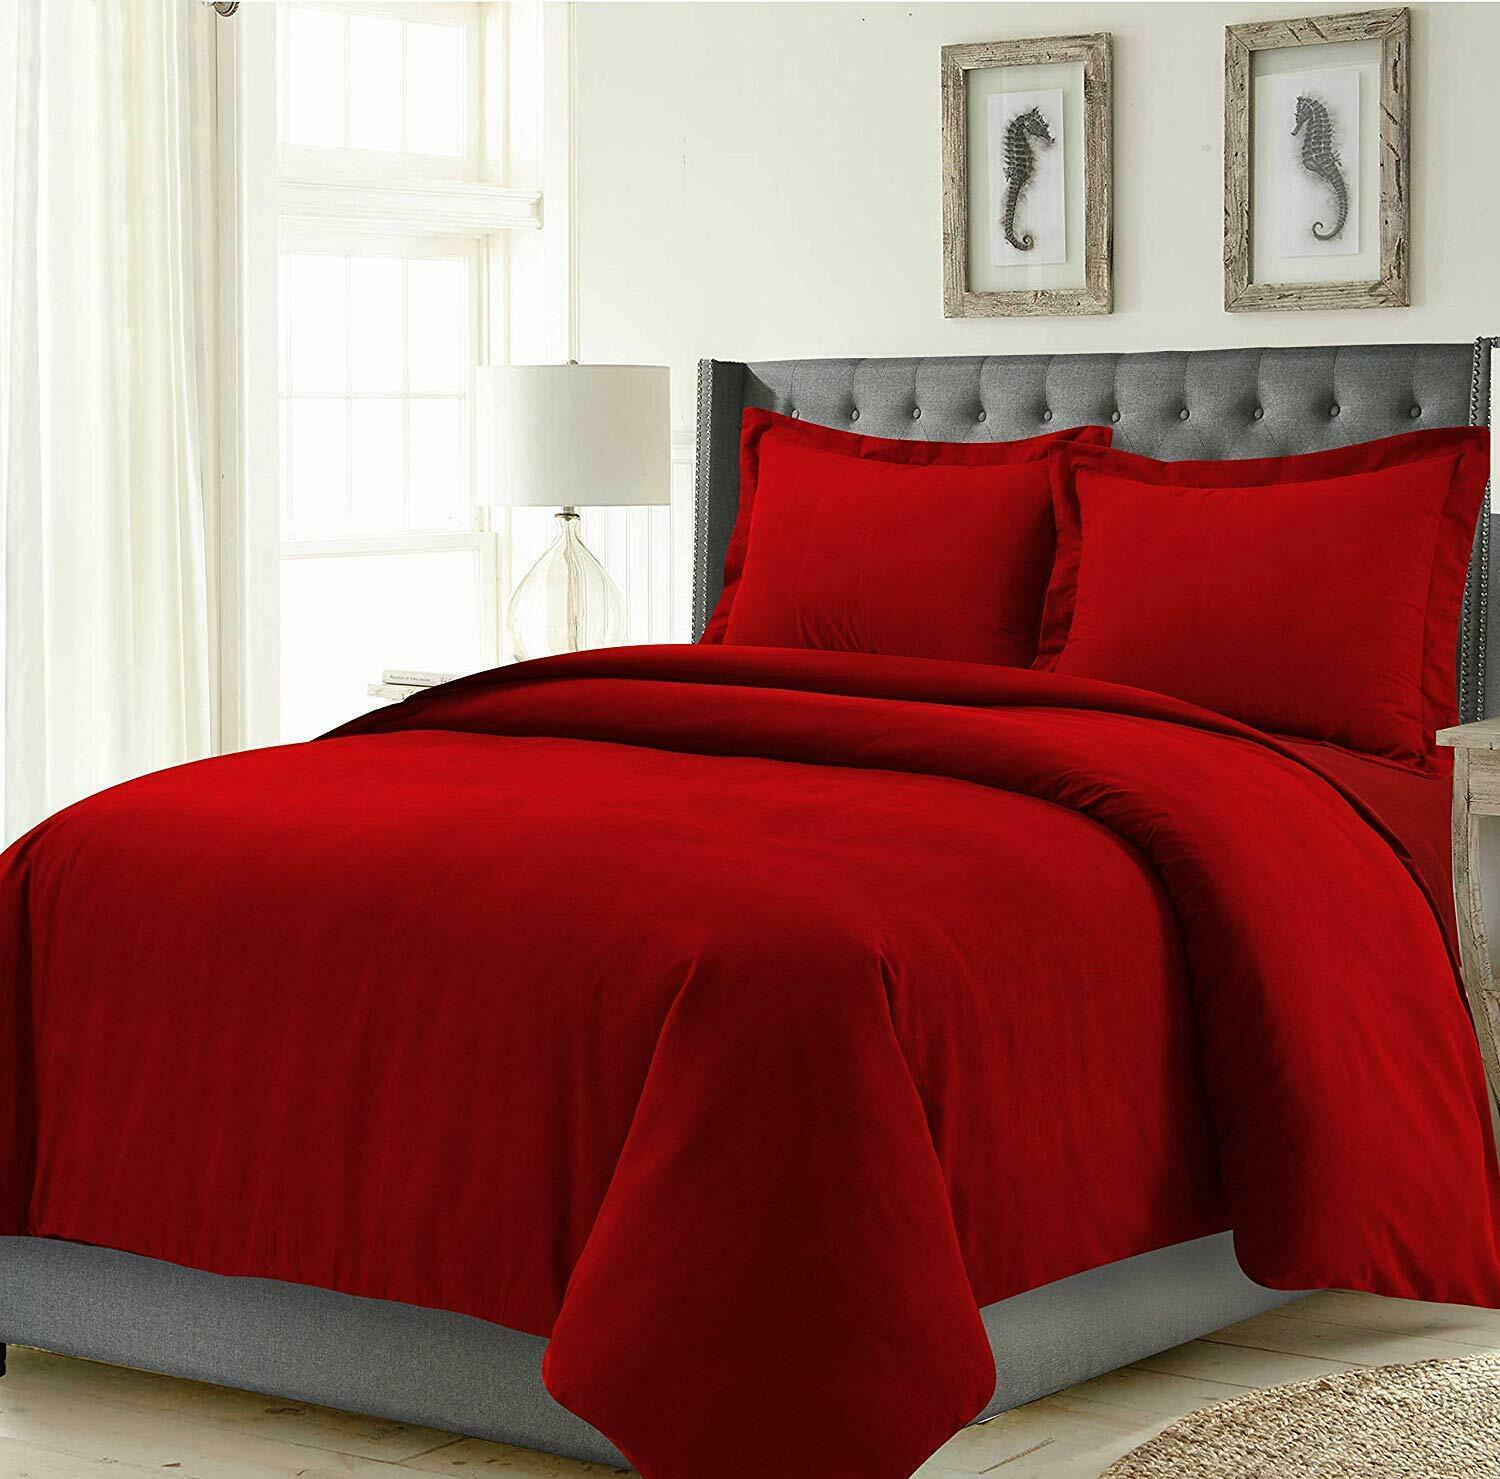 Best Quality Bedding Items rot Solid Egyptian Cotton 1000 Thread Count All Größes